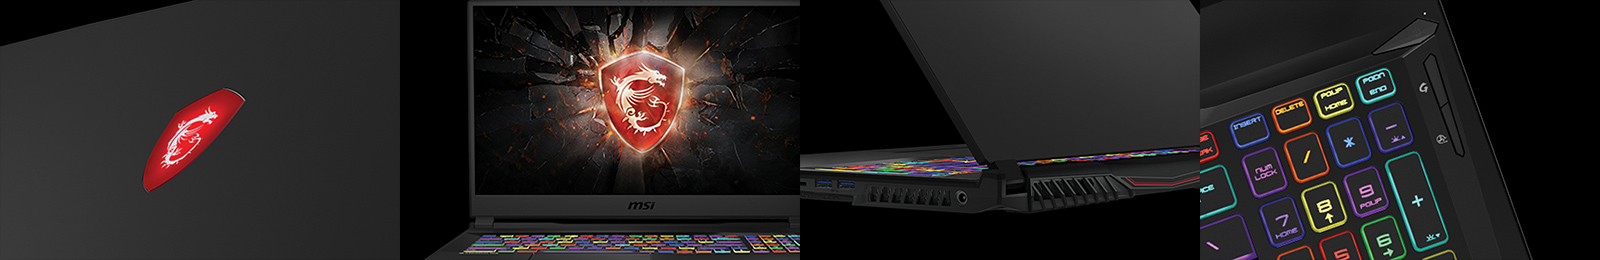 Four Different Views to Show MSI GL65: Front Cover, Screen,  Exhaust Vents and Keyboard